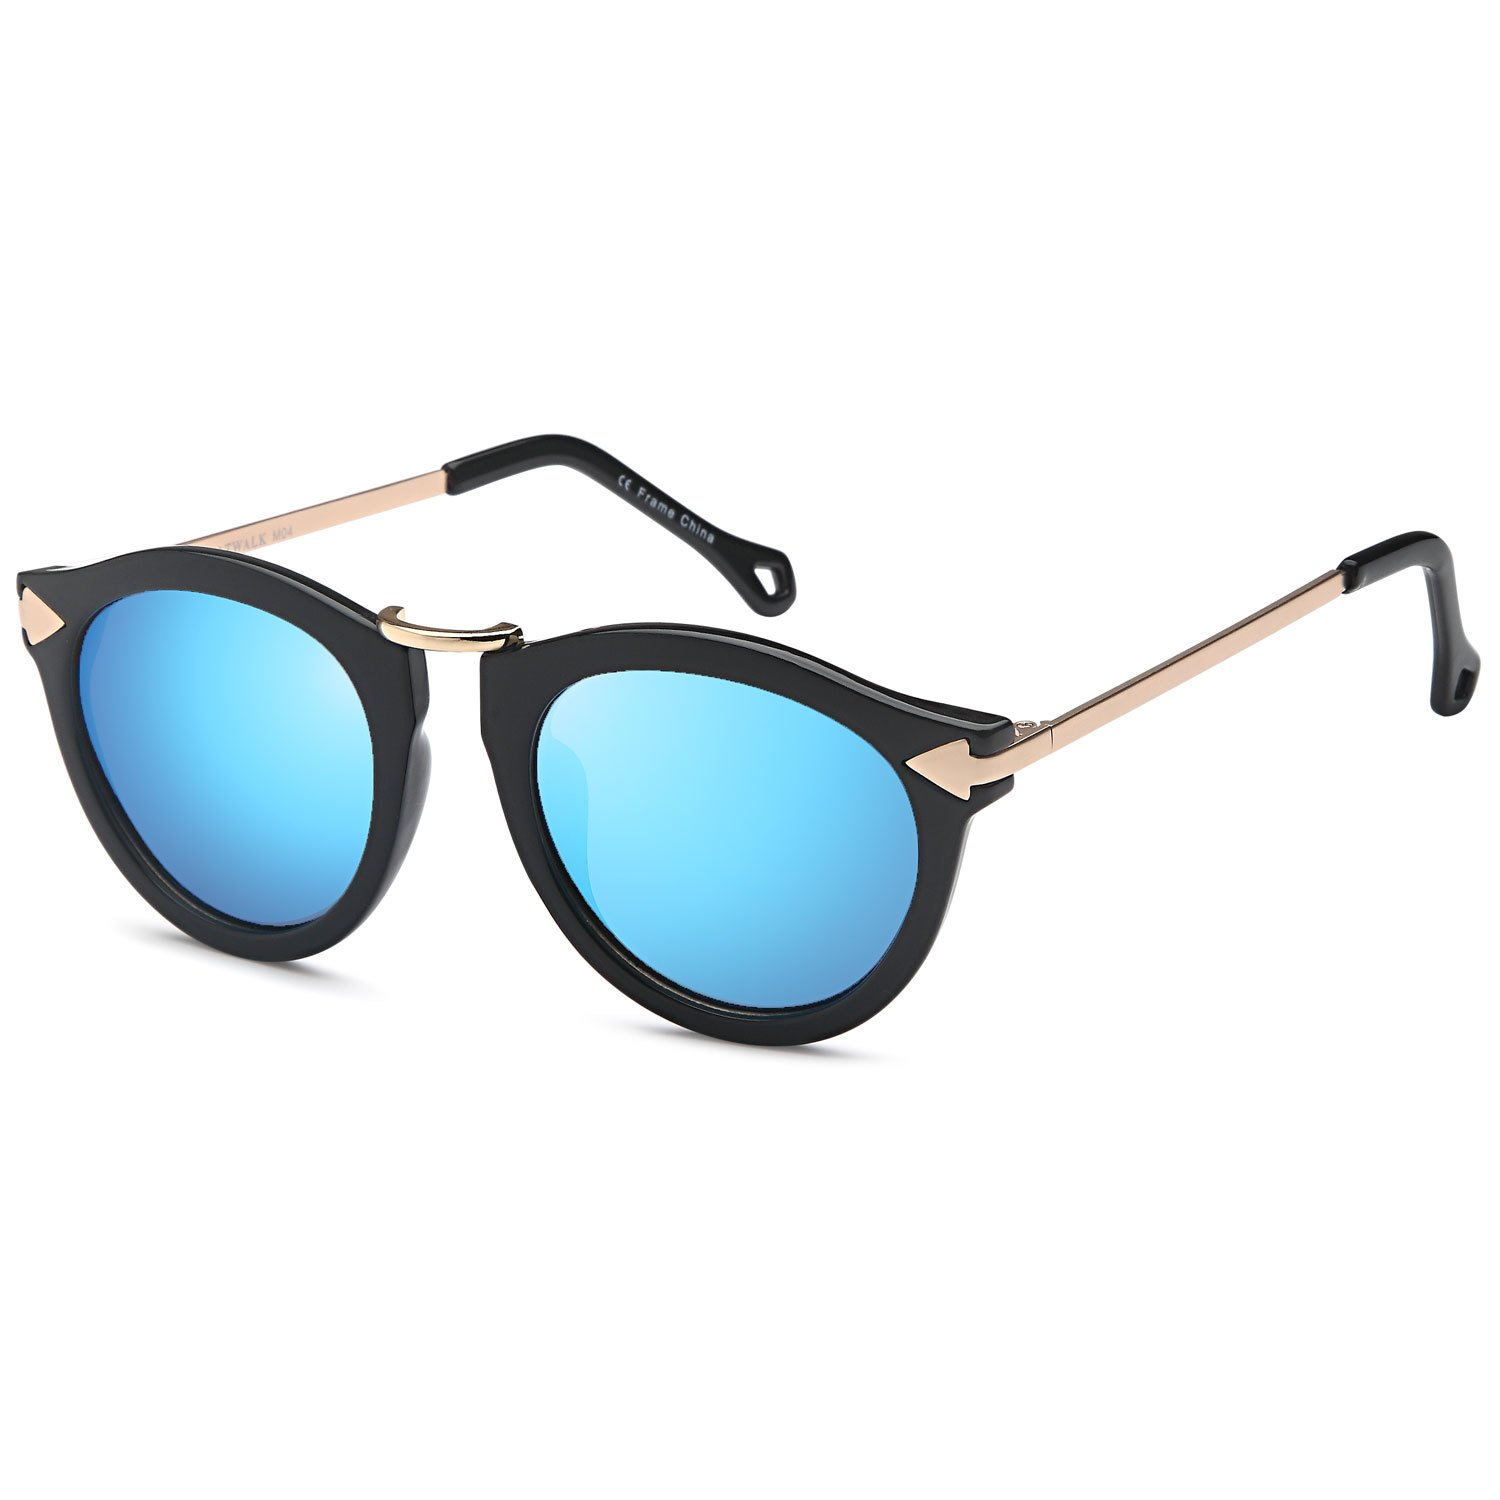 ce7ed4de8f34 Amazon.com  CATWALK Womens UV400 Round Cat Eye Sunglasses – Mirror Blue  Lens on Black Gold Frame  Clothing